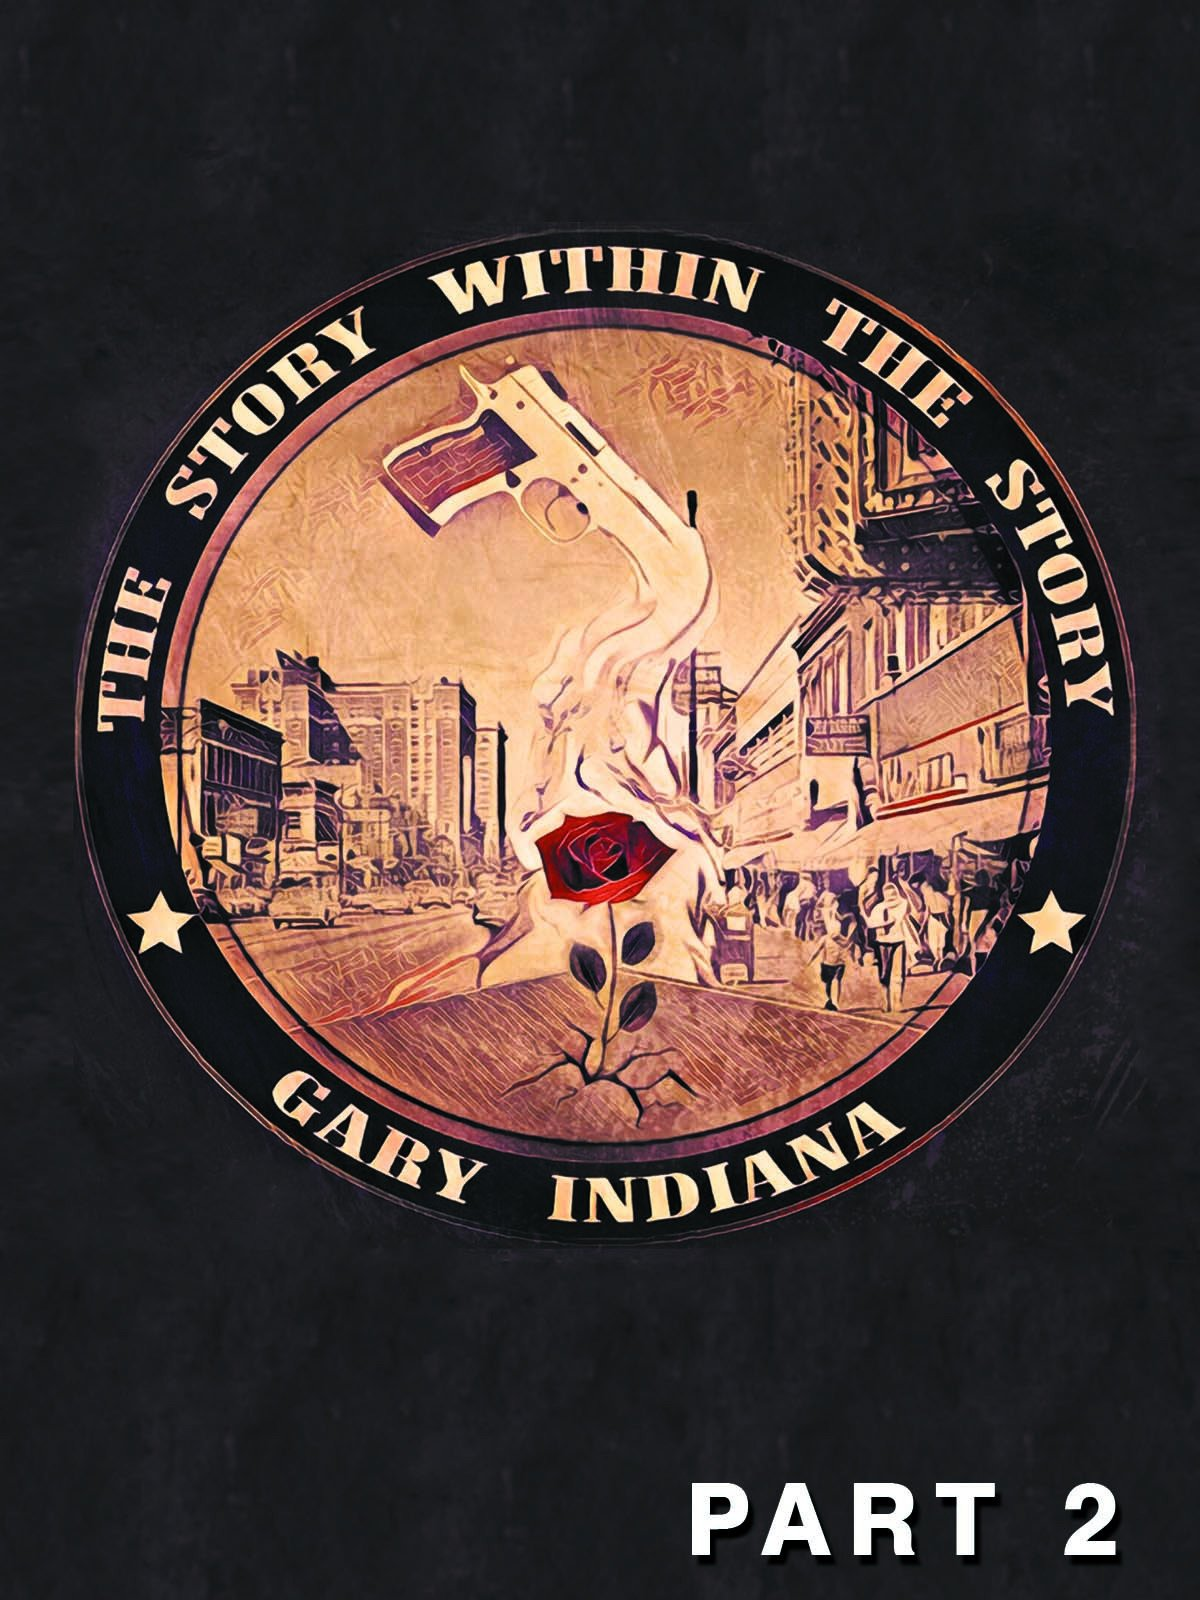 The Story Within the Story: Gary, Indiana (Part 2)